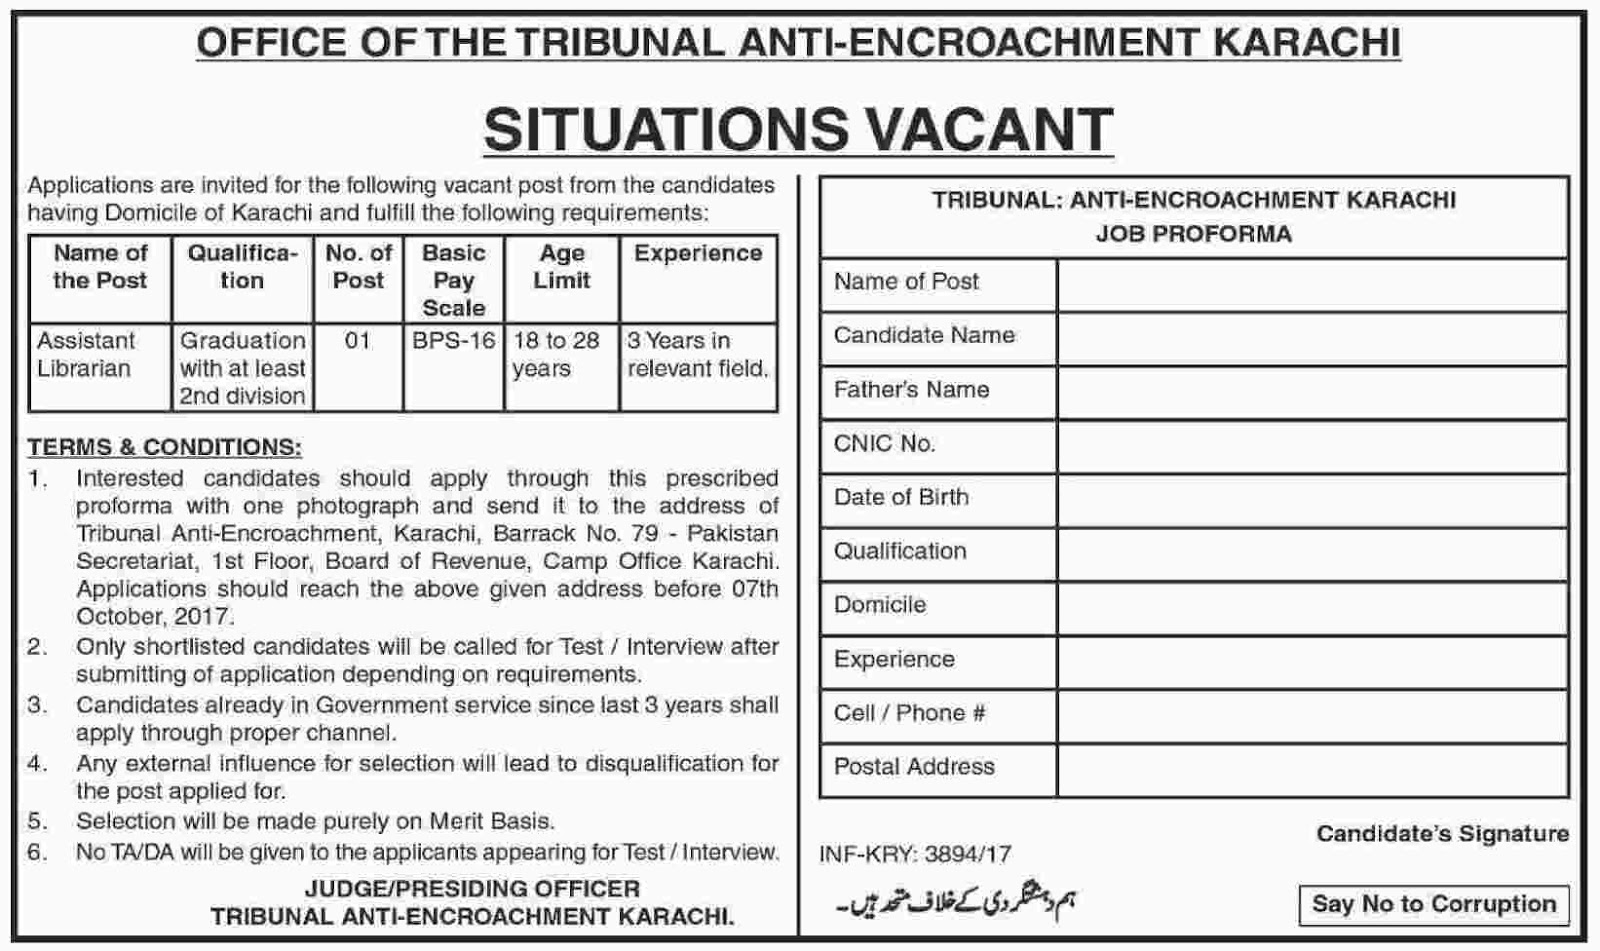 Jobs In Office Of The Tribunal Anti Encroachment Karachi 25 Sep 2017